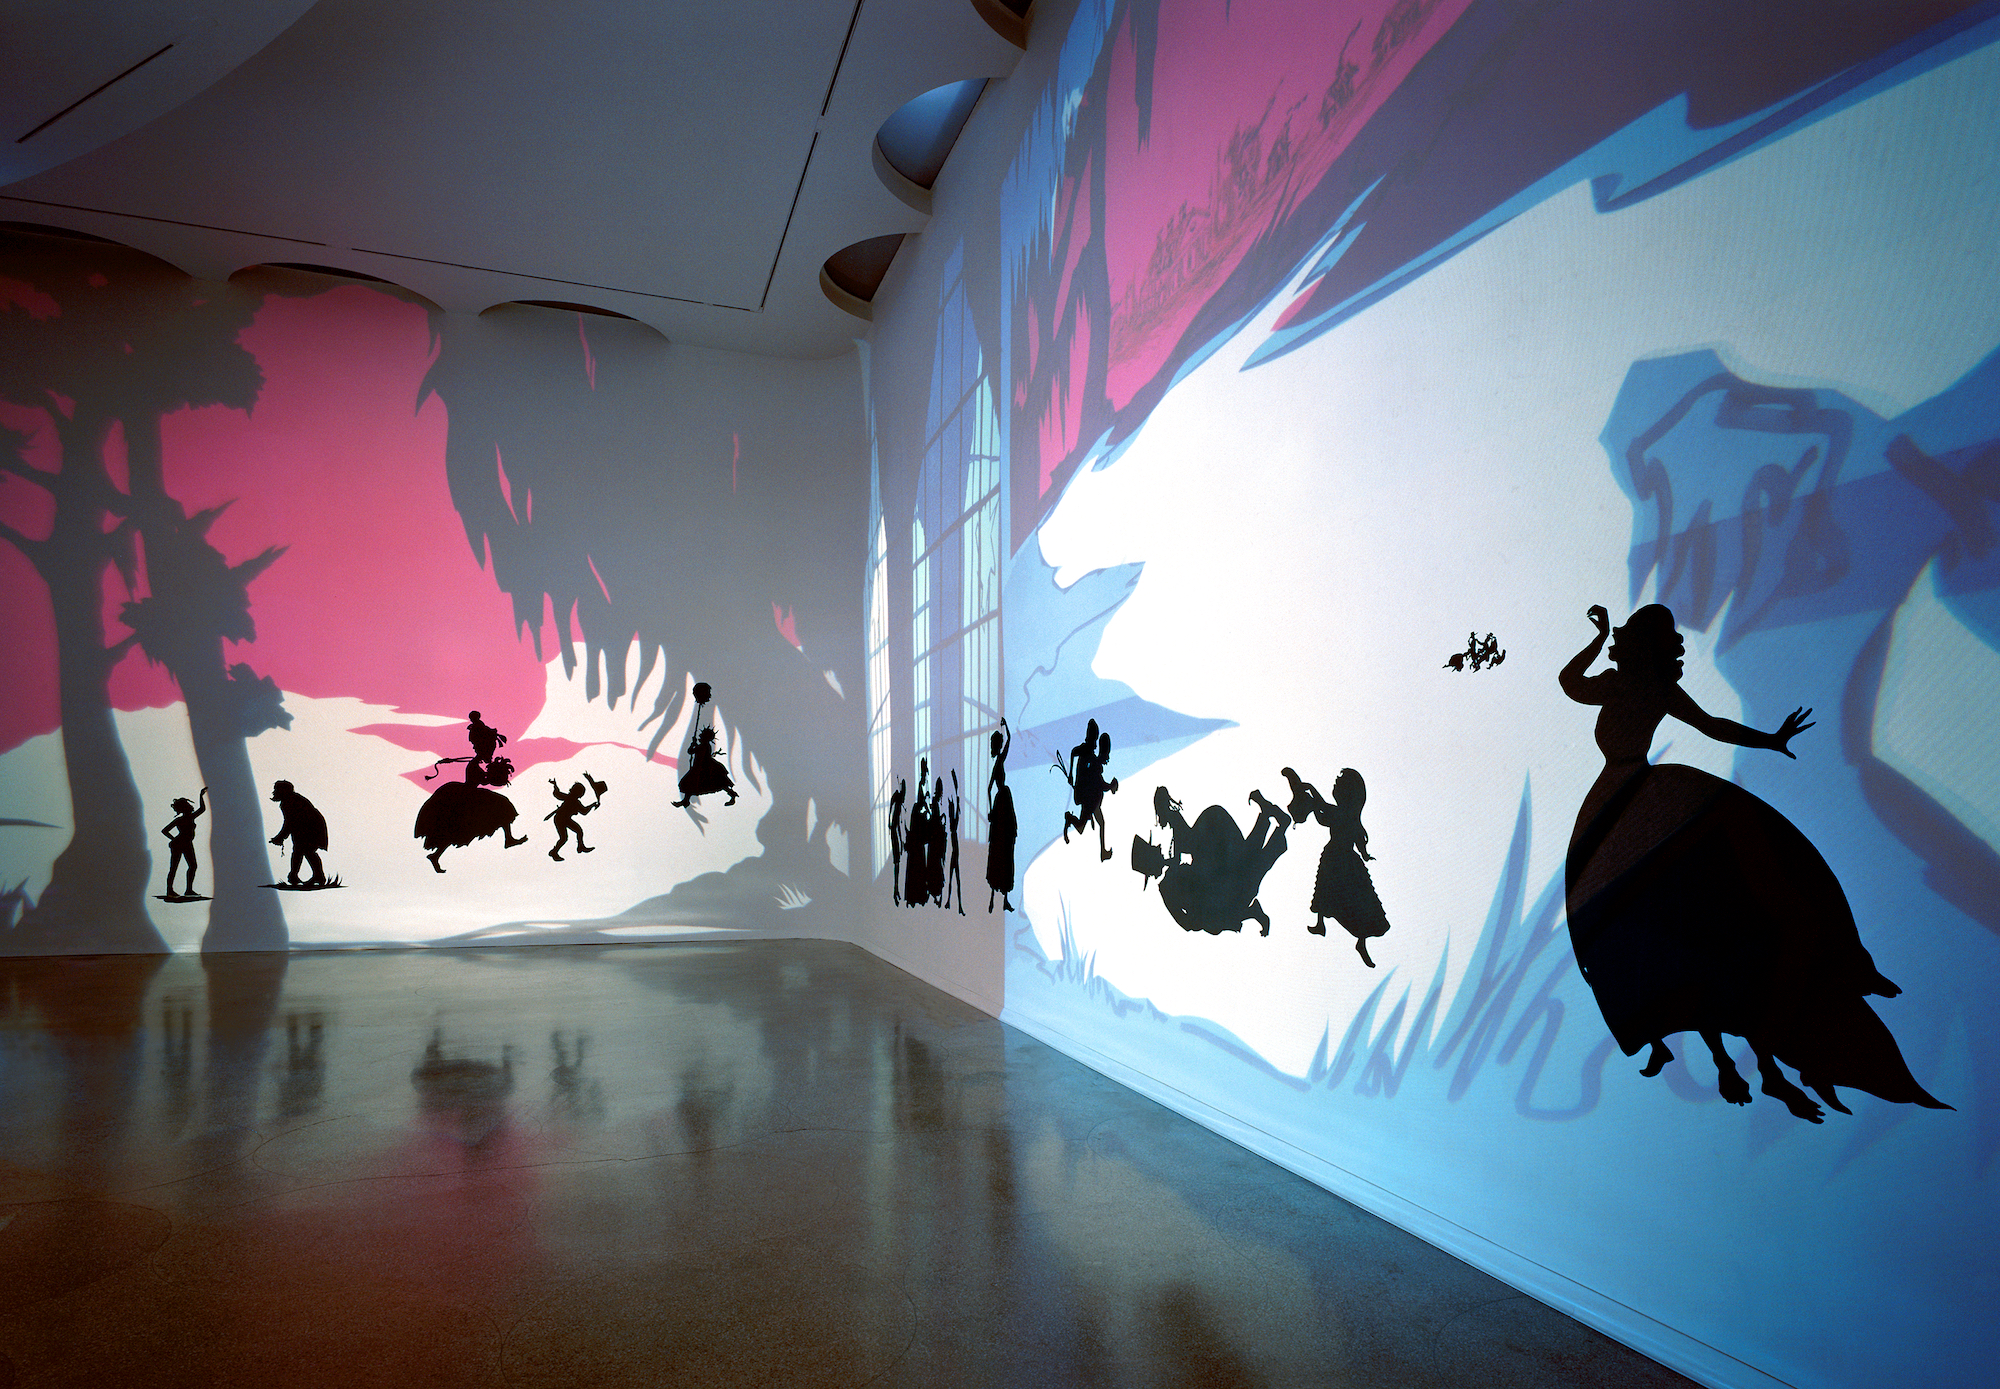 Kara Walker, Insurrection! (Our Tools Were Rudimentary, Yet We Pressed On) , 2000. Cut paper and projection on wall, approx. 144 x 870 inches.Solomon R. Guggenheim Museum, New York, 2002. Photo: Ellen Labenski